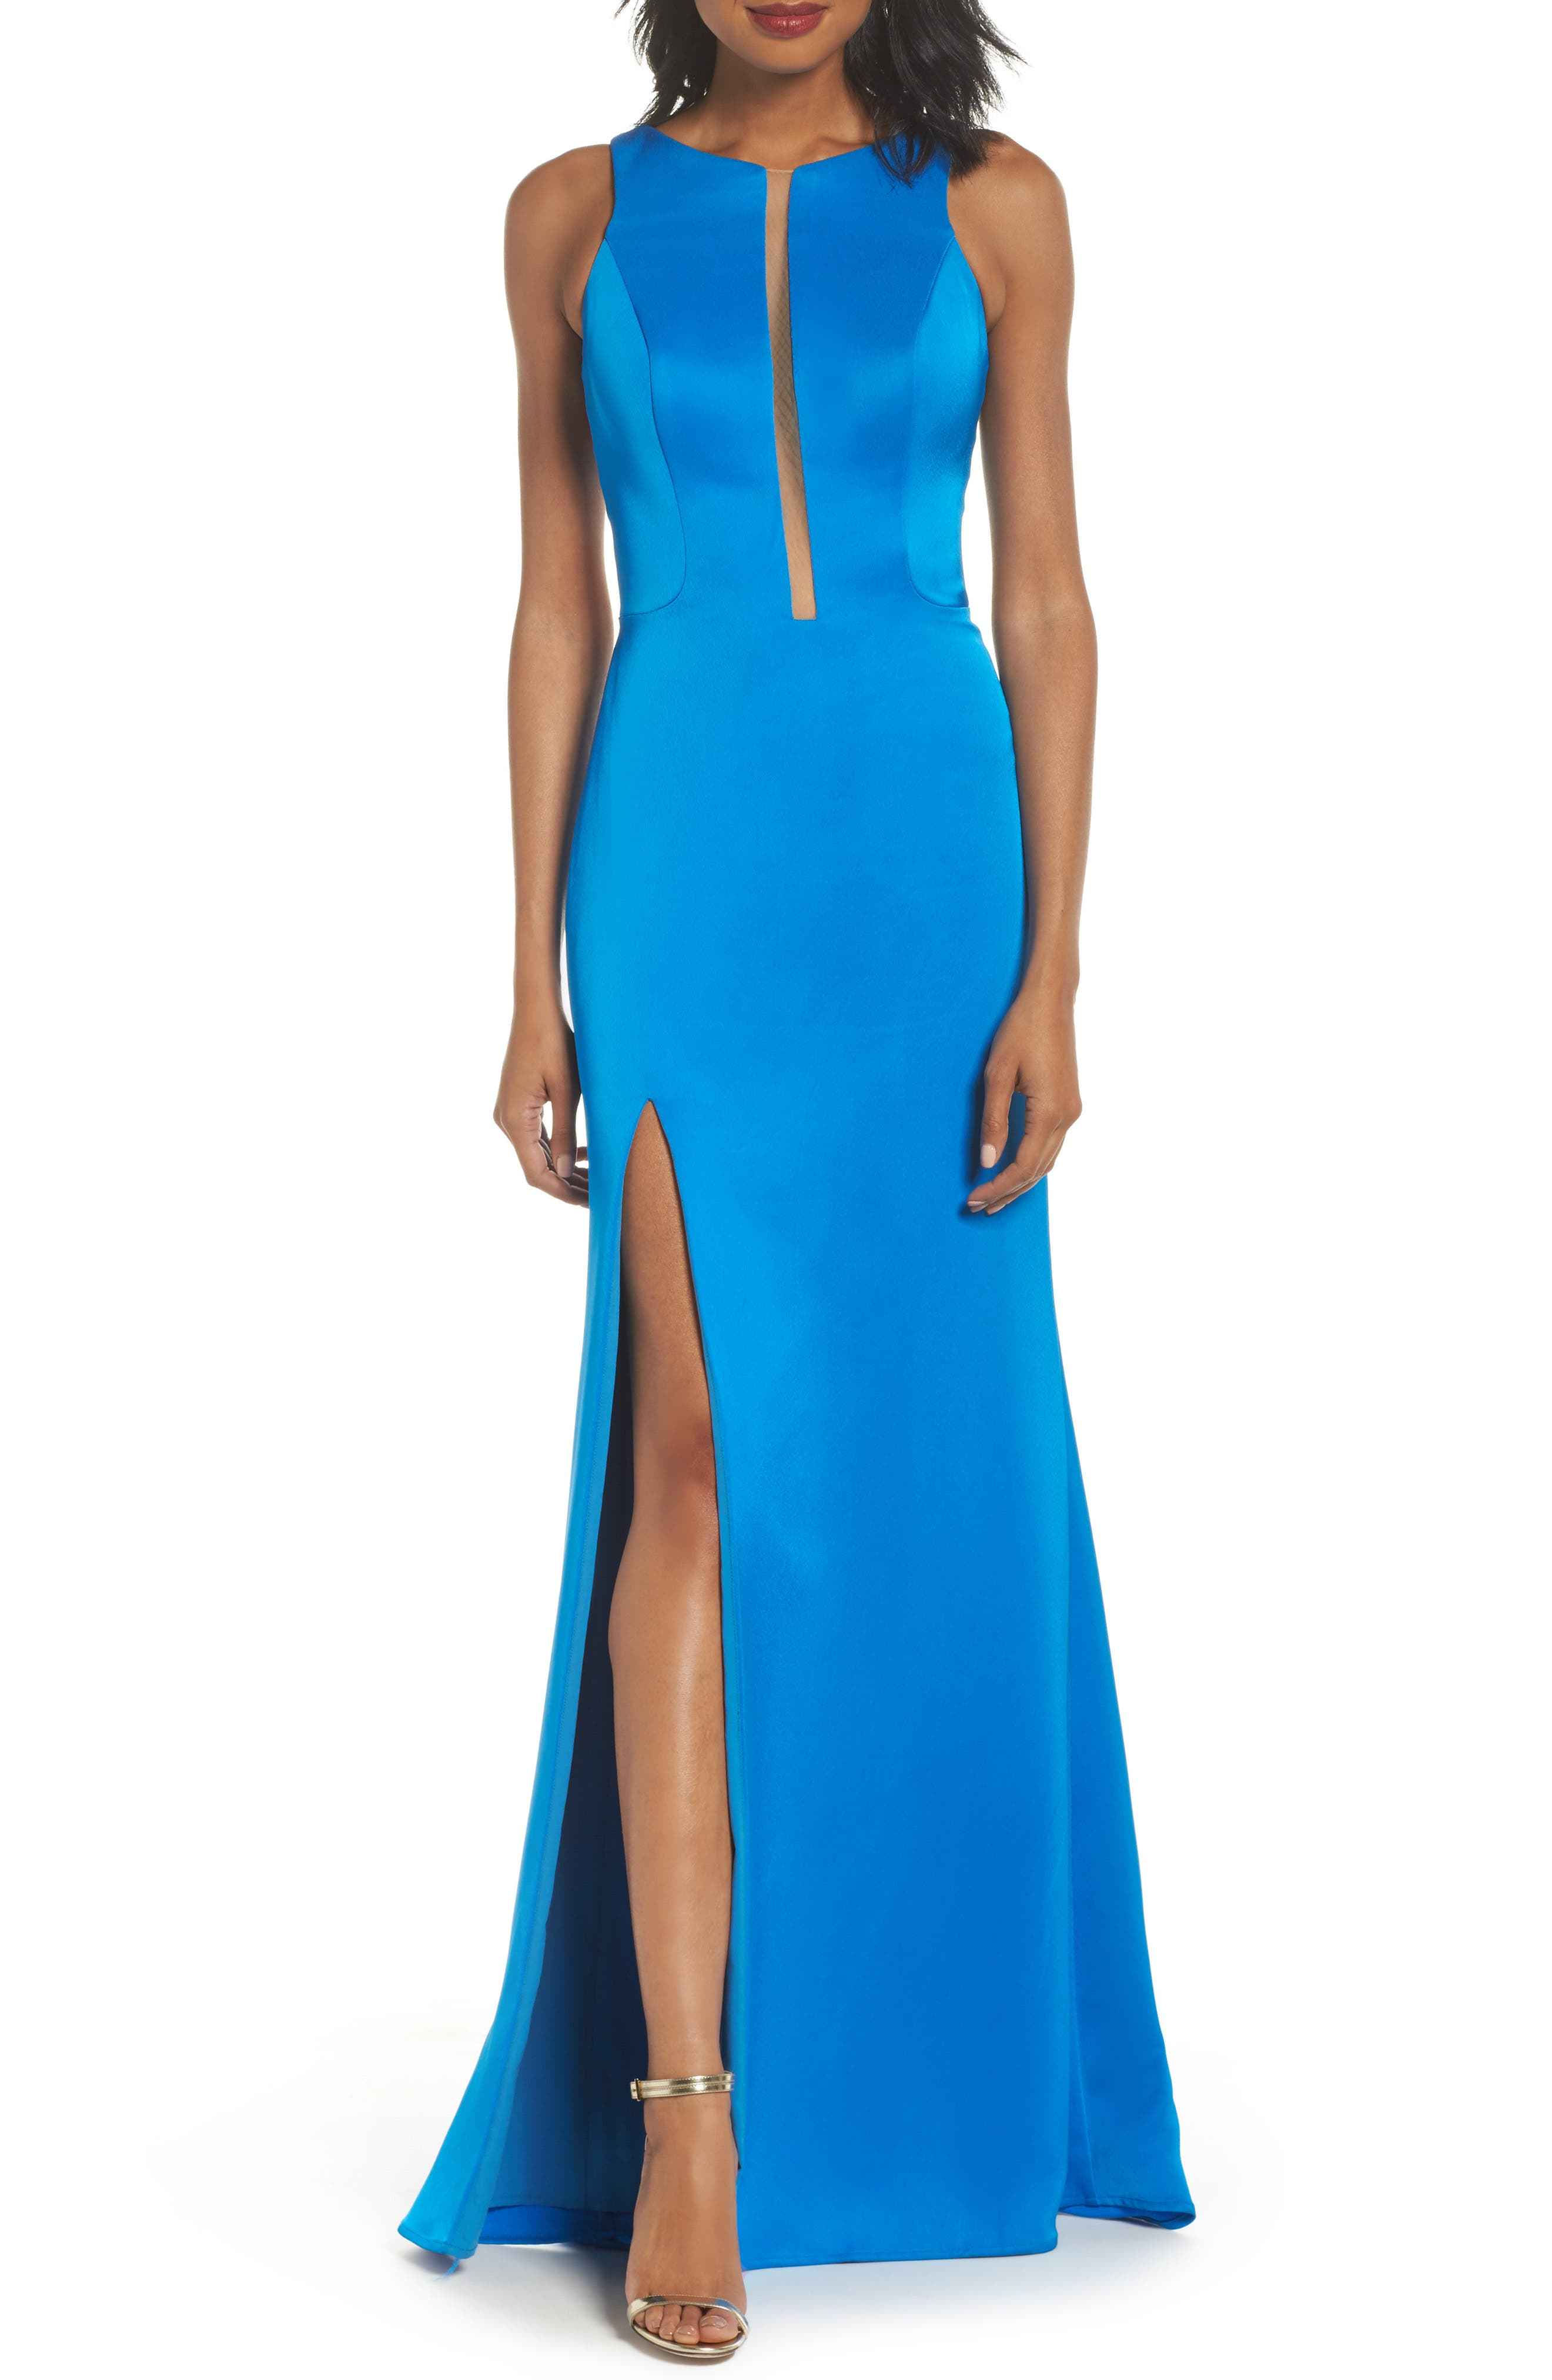 Cage Back Satin Gown,                             Main thumbnail 1, color,                             Ocean Blue